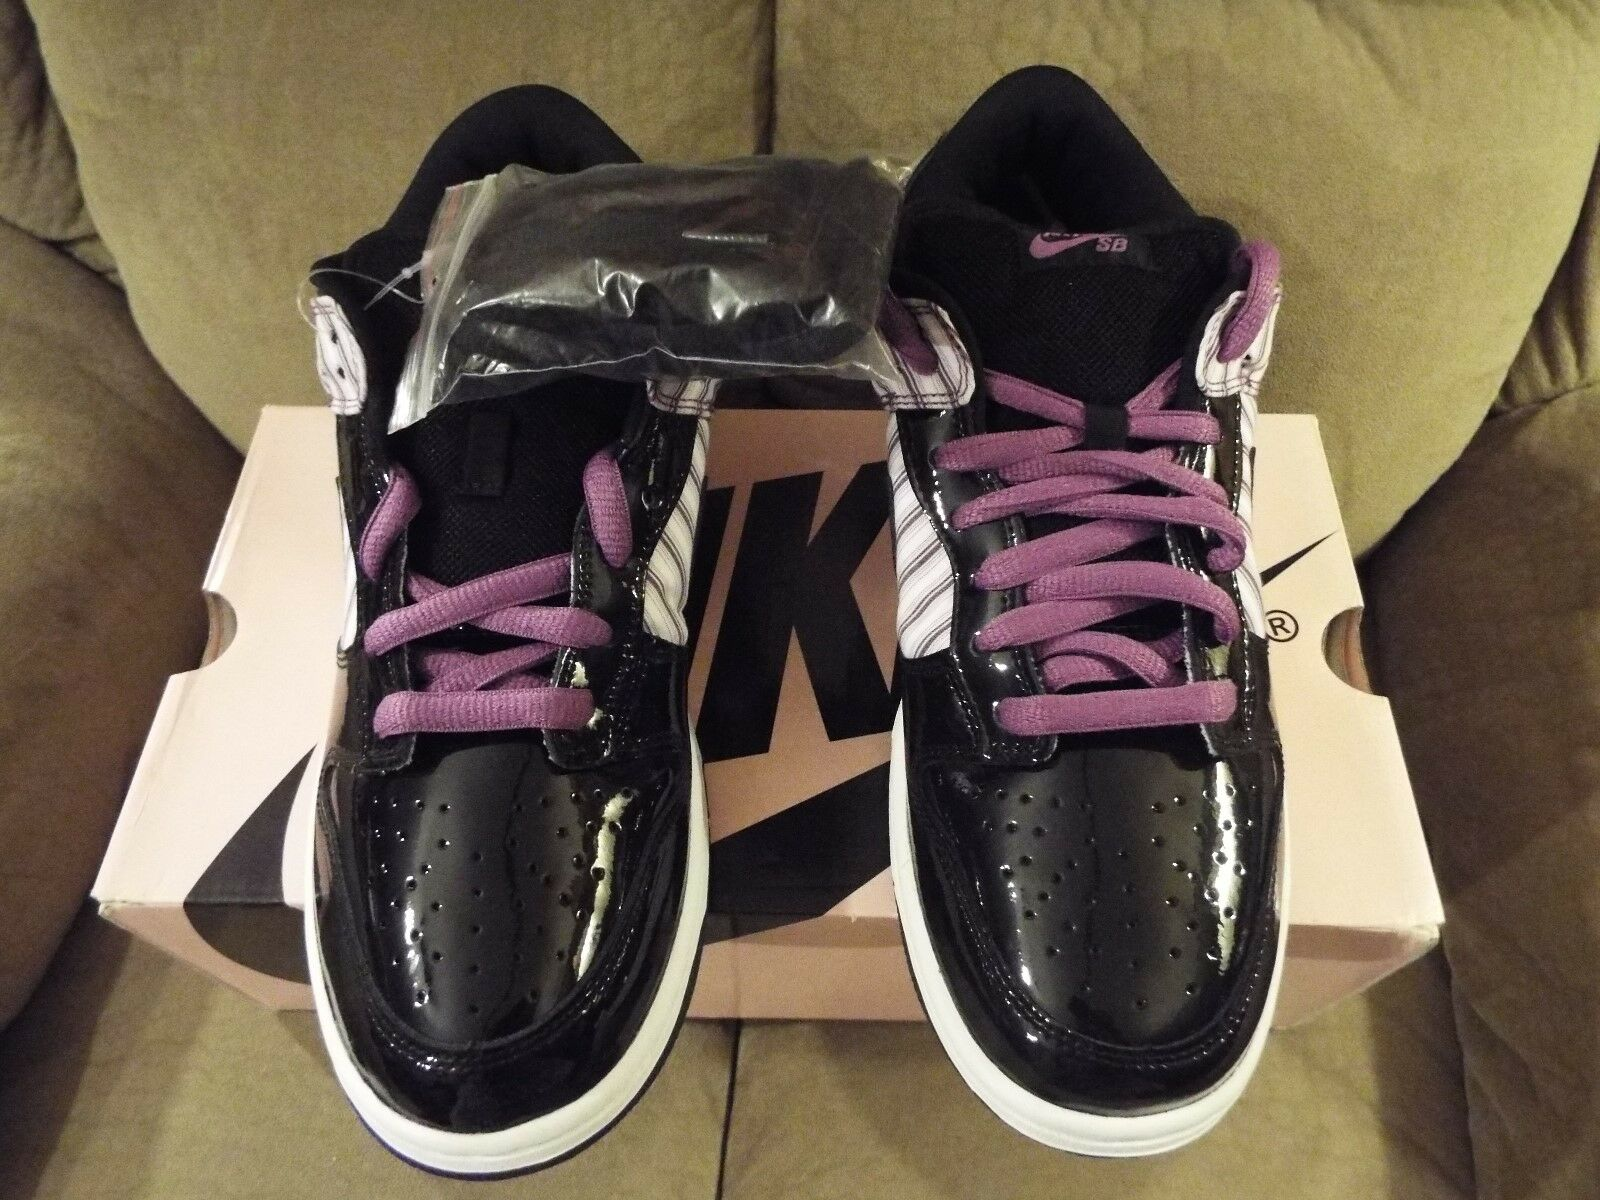 05 NIKE DUNK LOW PRO SB 304292-101 PL Avenger Purple White/Black-Hyancinth 304292-101 SB sz10 607561